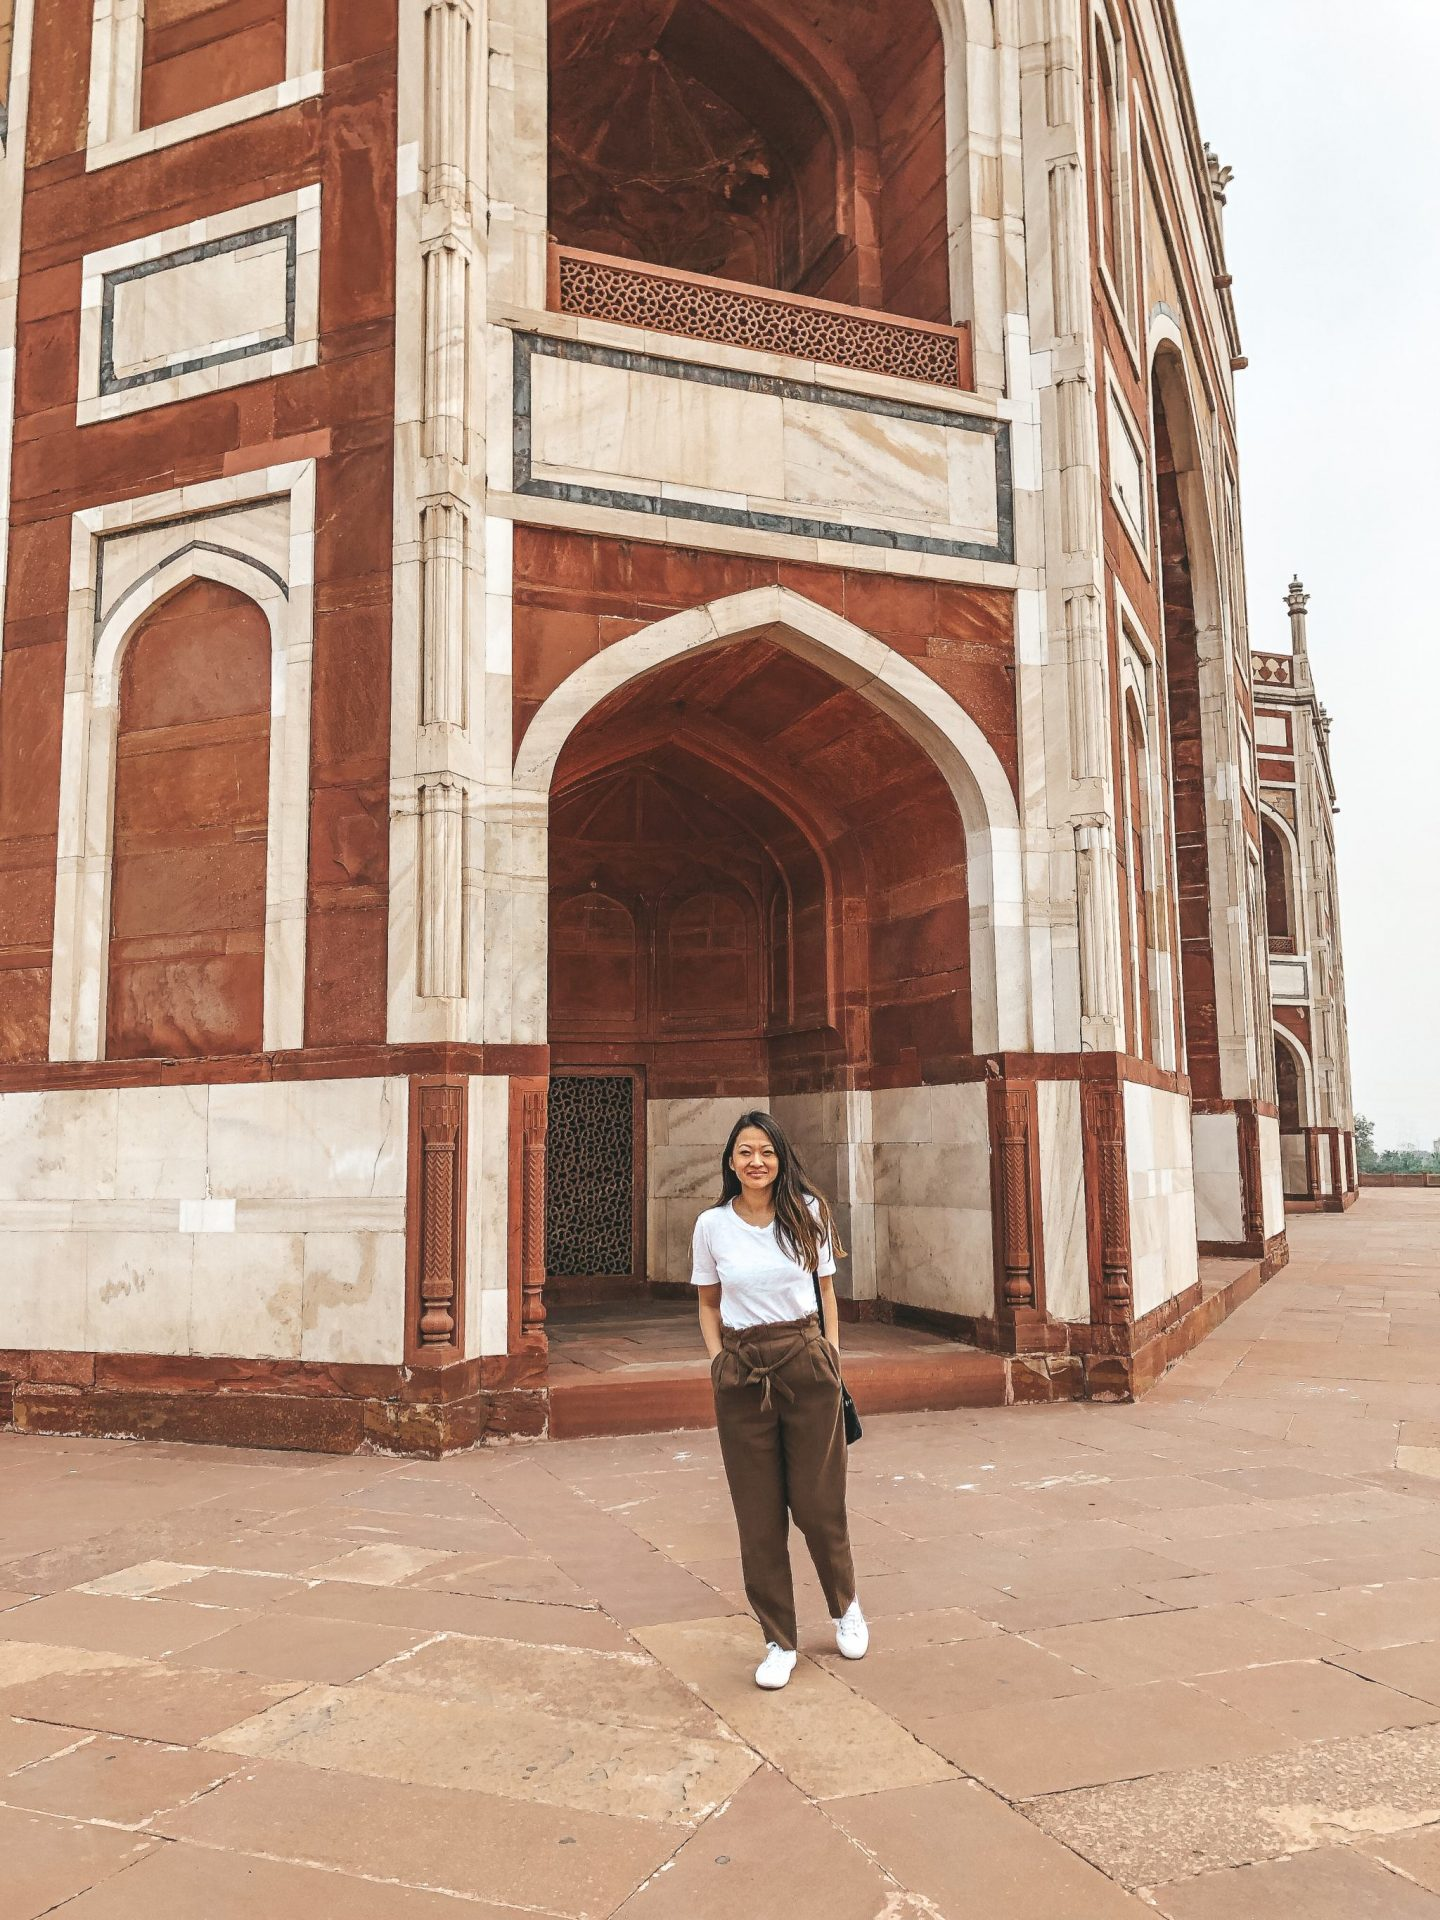 travel-guide-to-delhi-india-Humayun's-Tomb